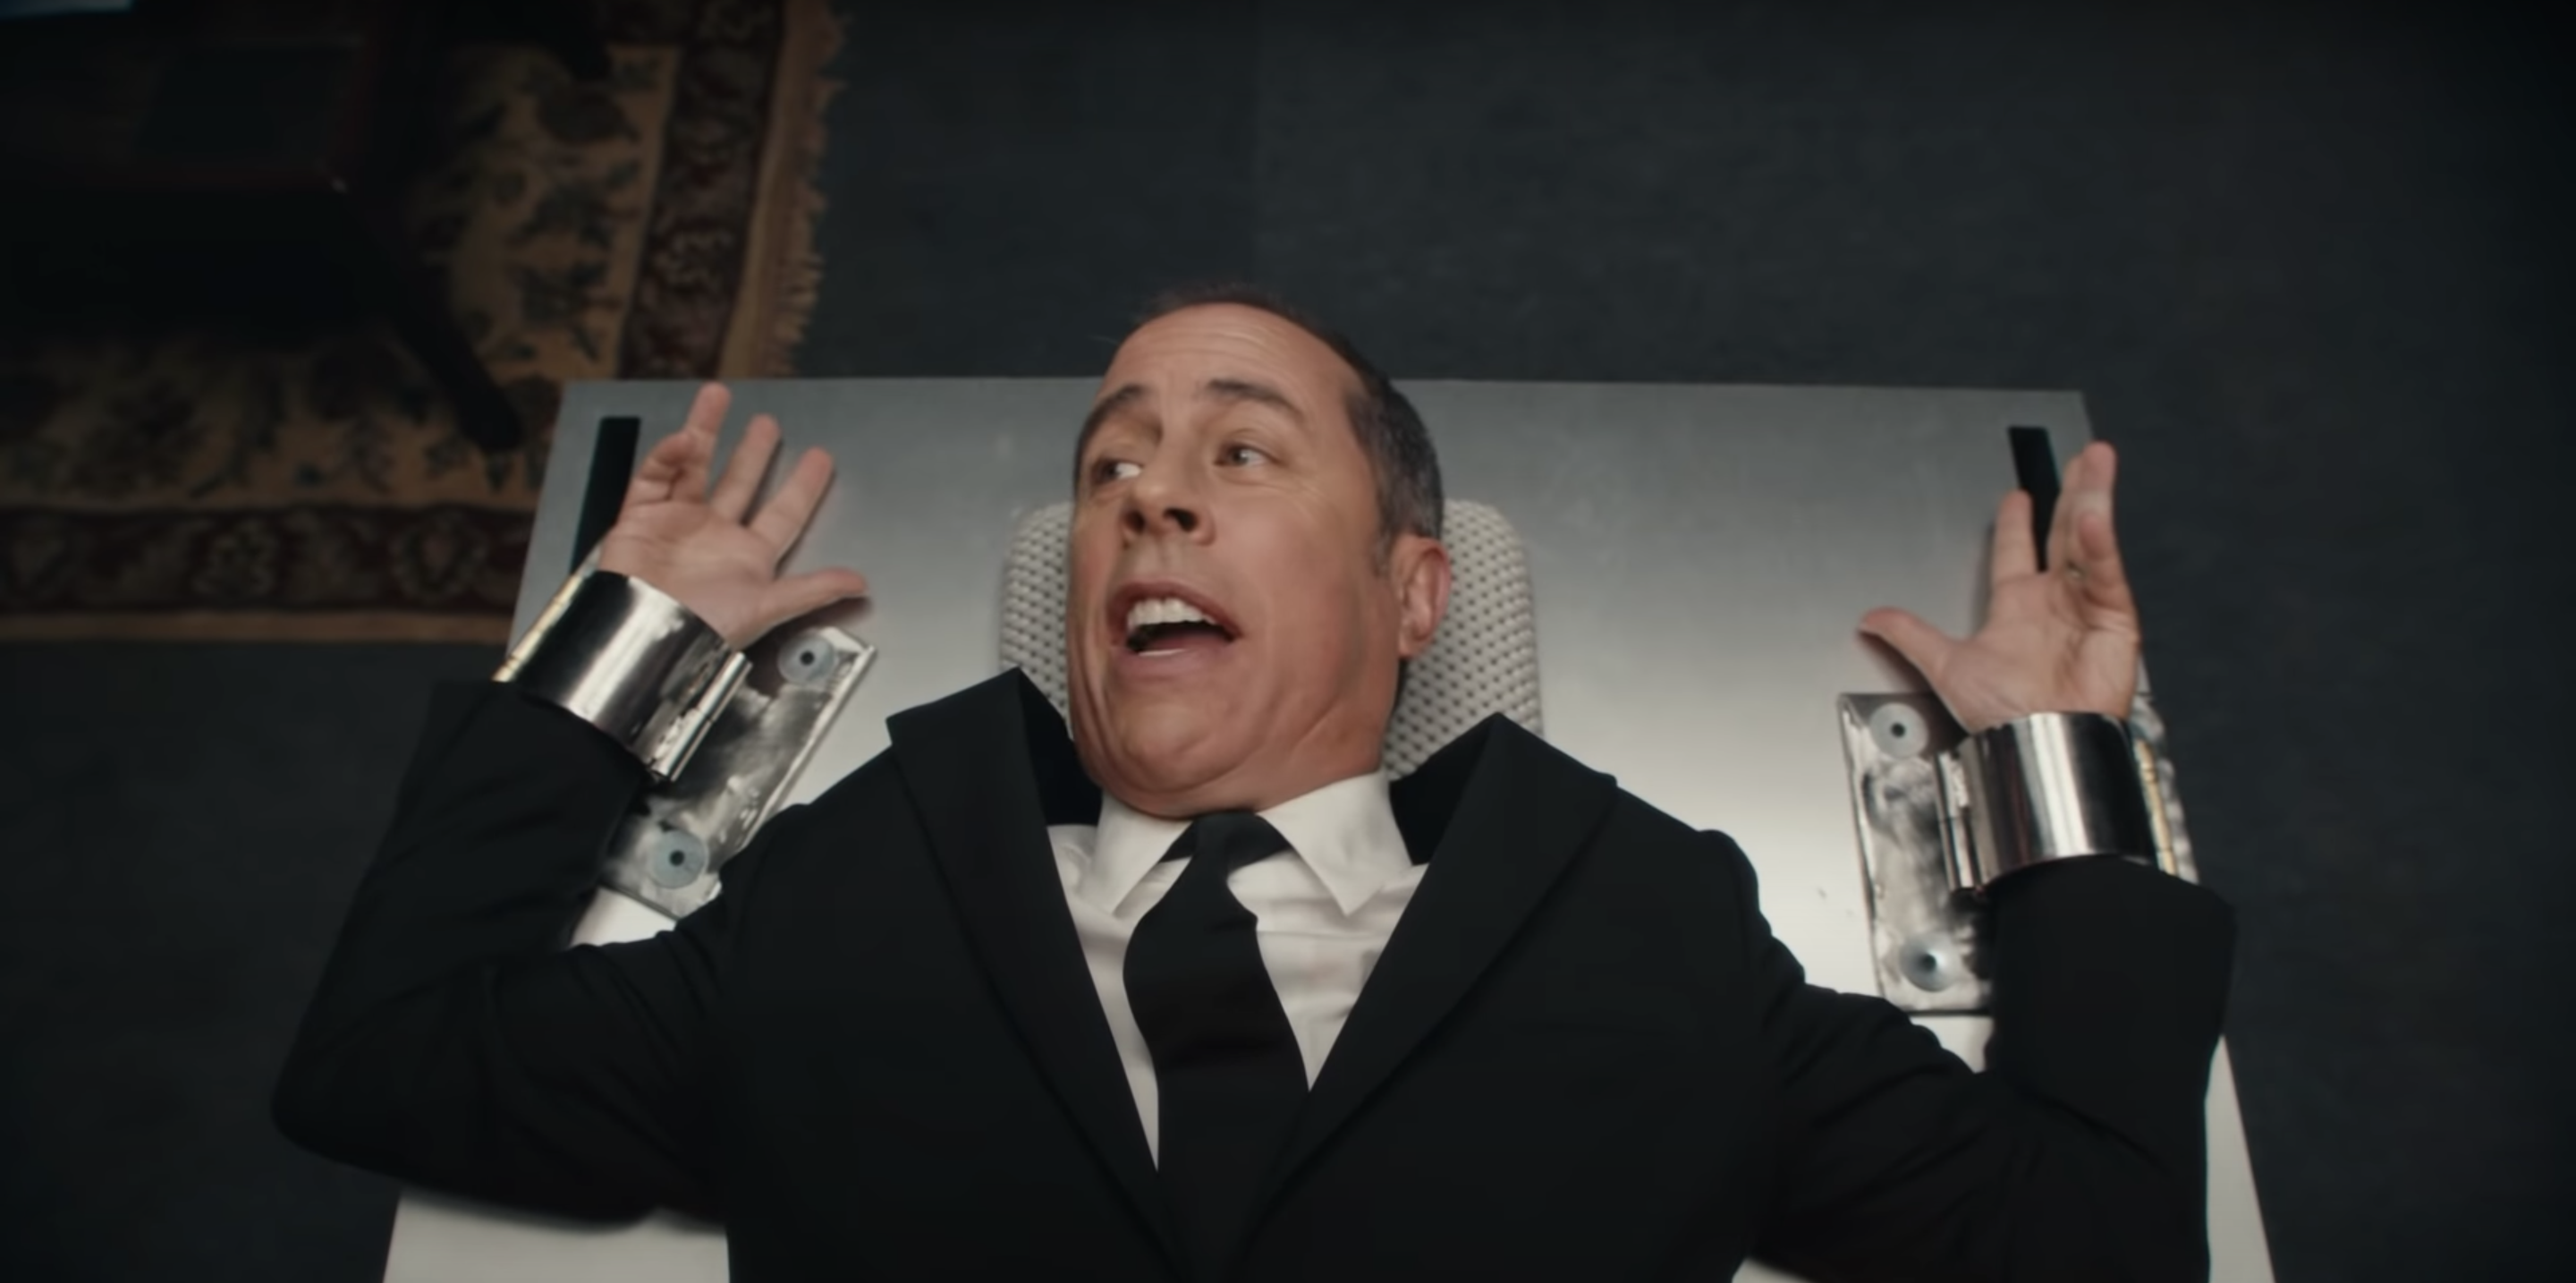 Jerry Seinfeld returns to Netflix with his first original special in 22 years